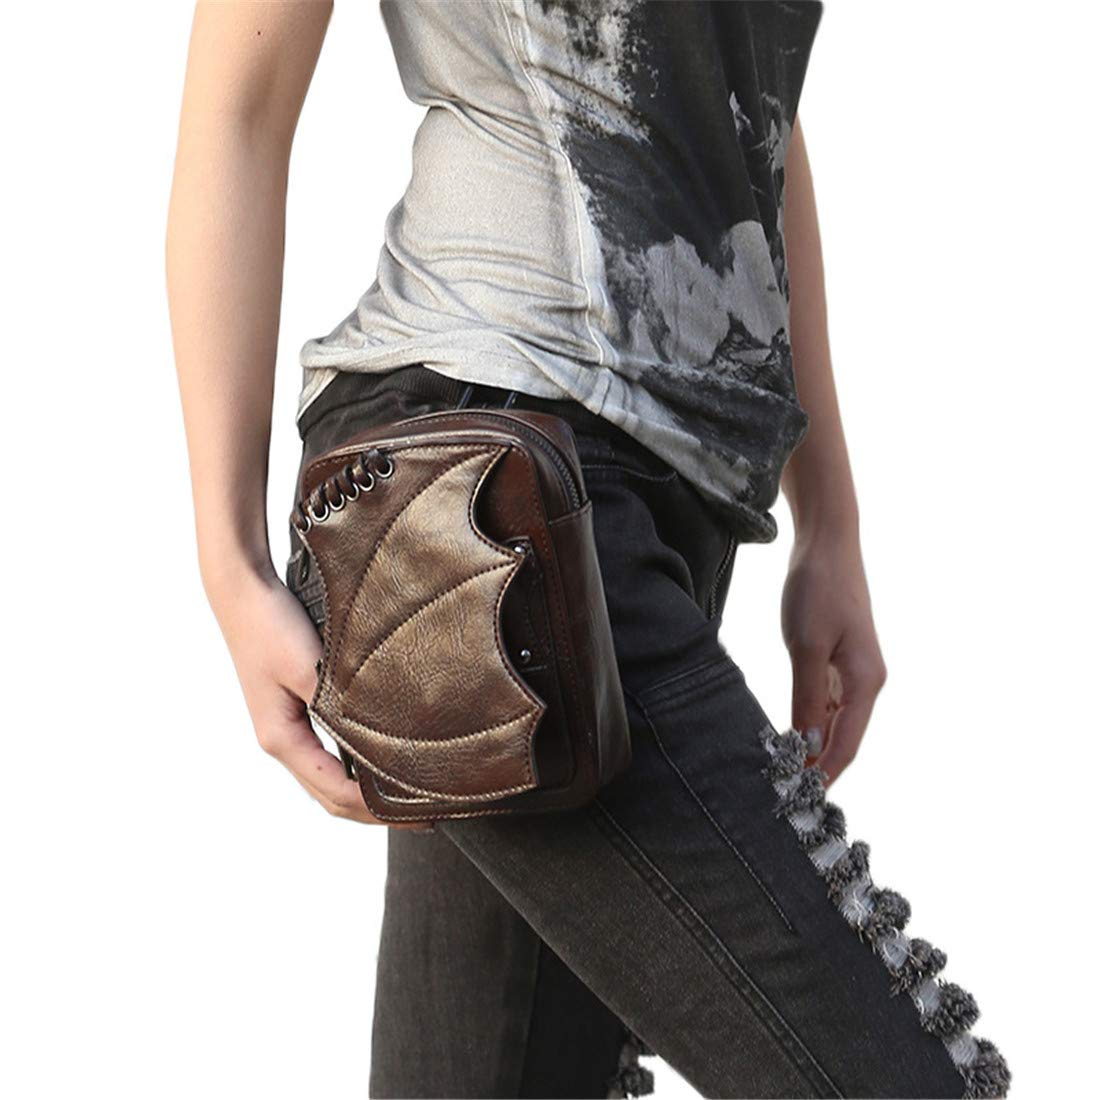 Qhome Brown Bat Victorian Retro Shoulder Waist Bags Steampunk Goth PU Leather Leg Thigh Holster Bags